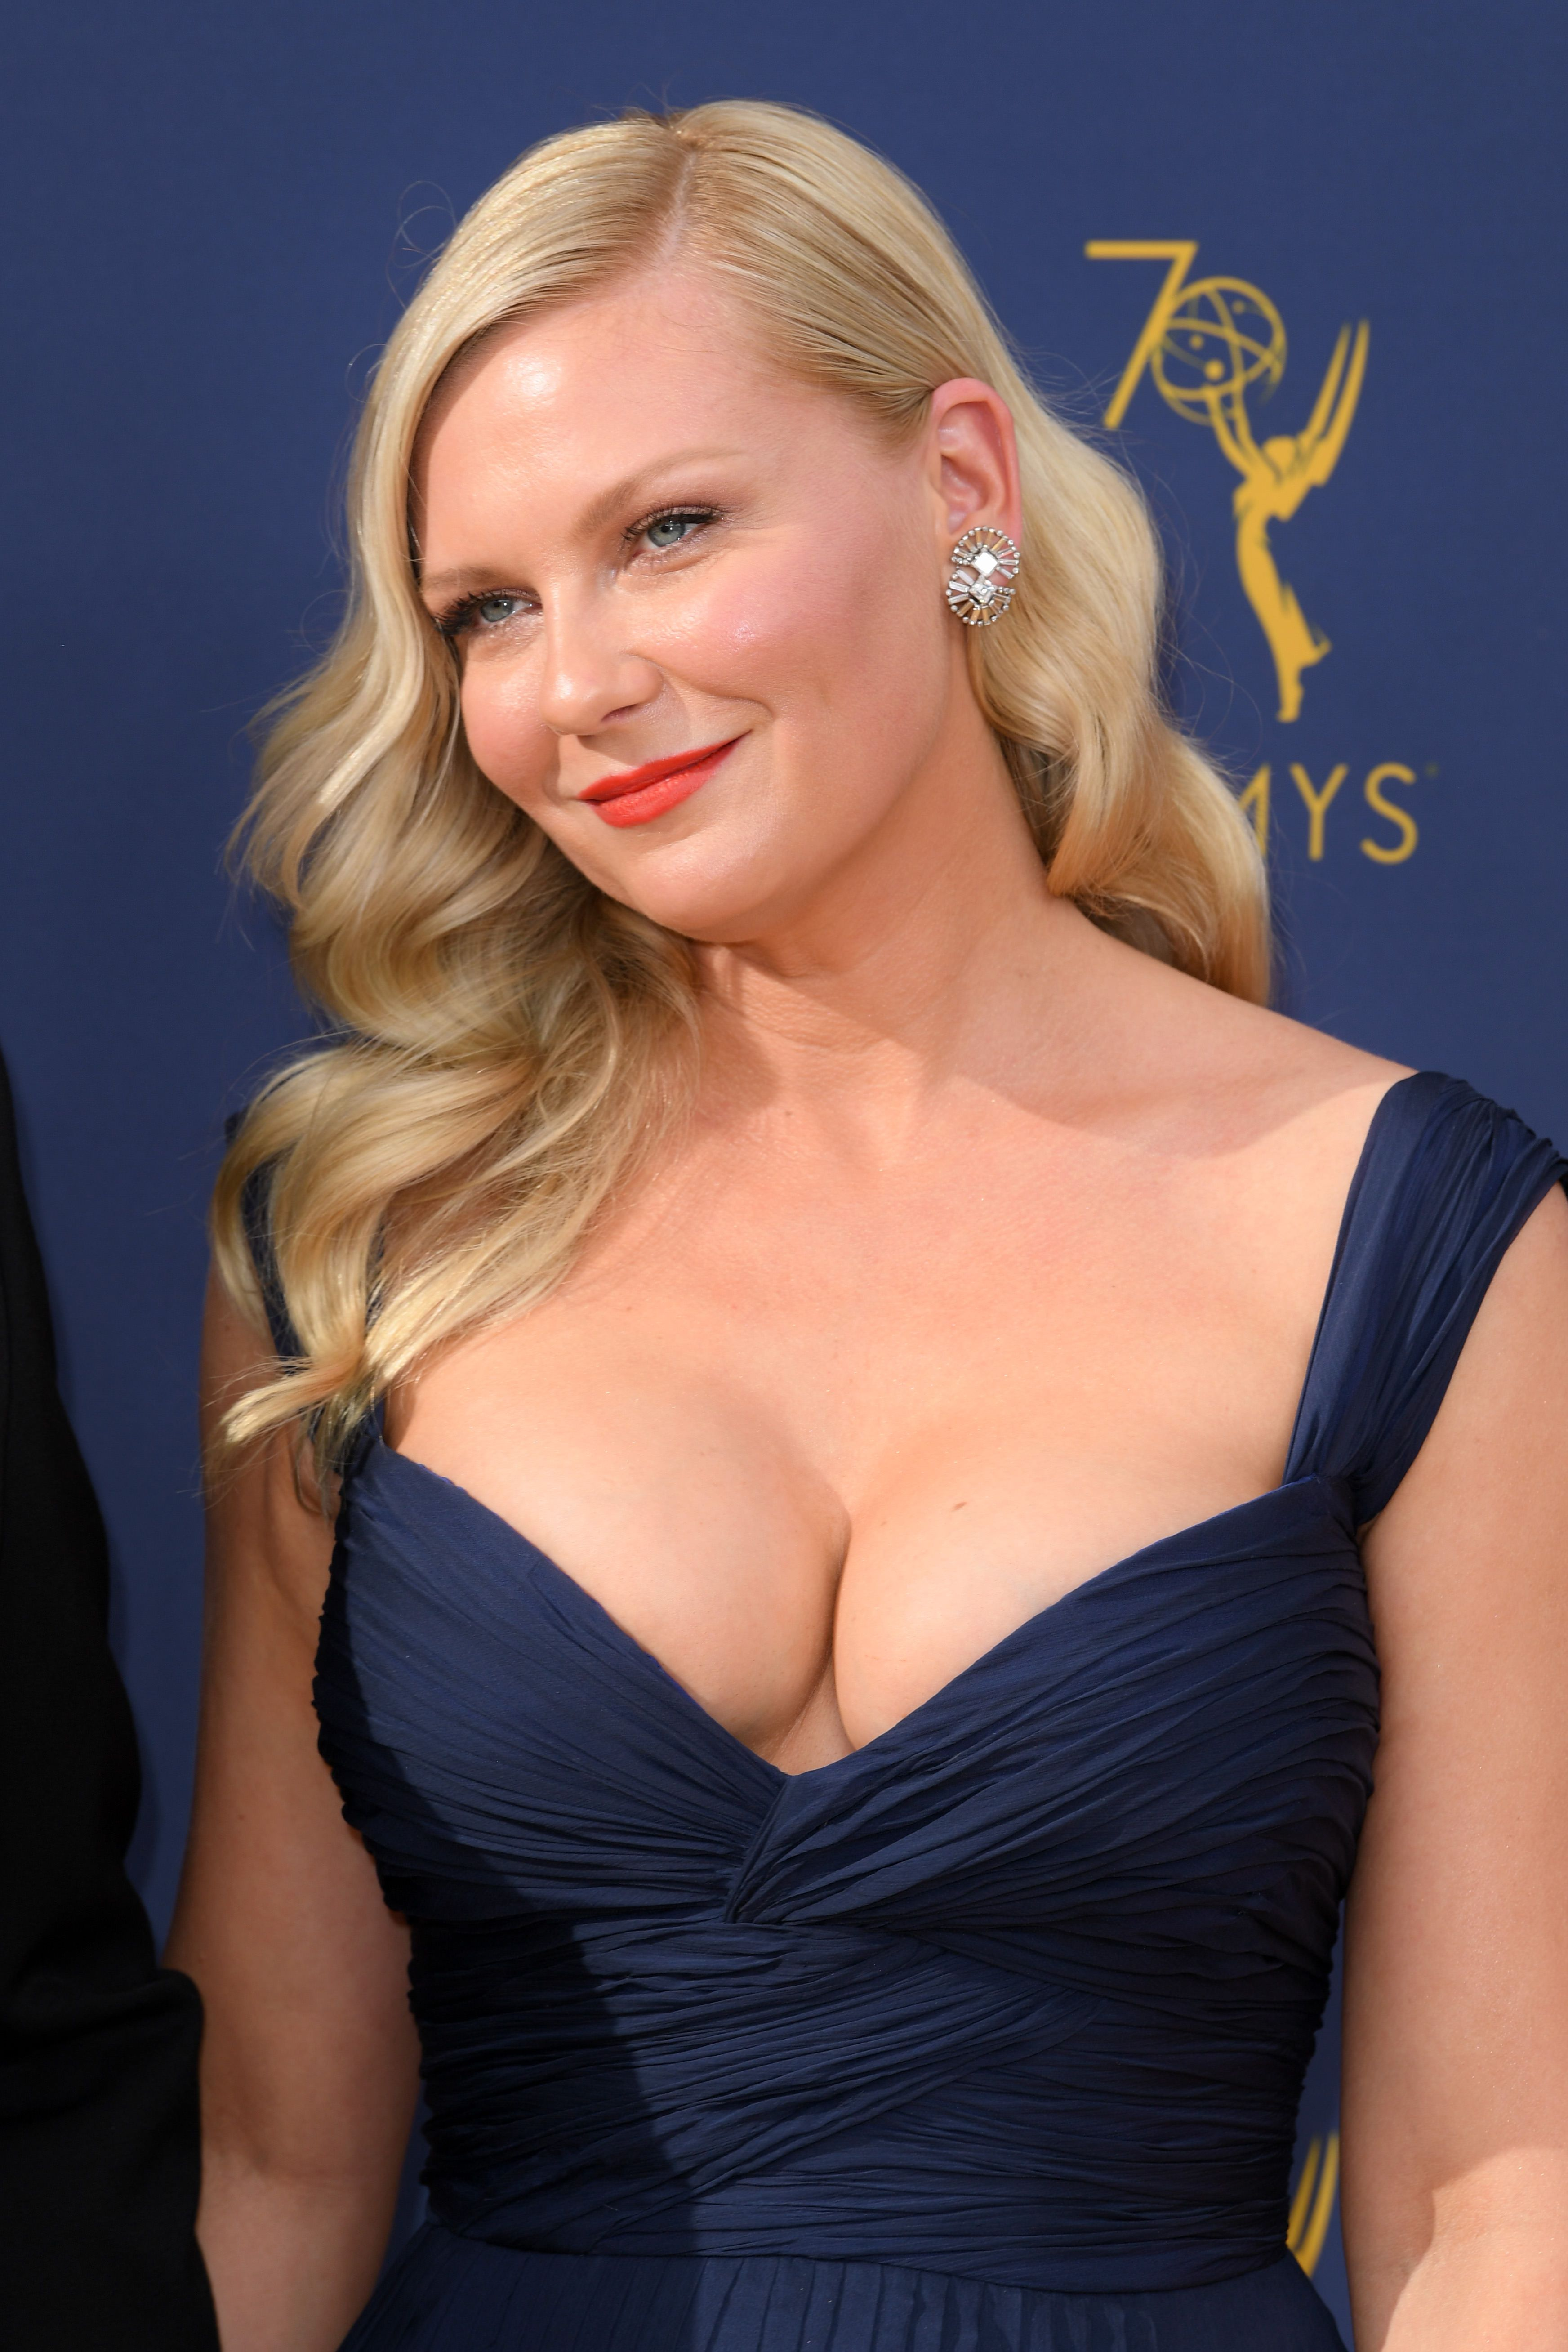 Kirsten dunst old lady tits nudes (21 photo), Sexy Celebrites photos